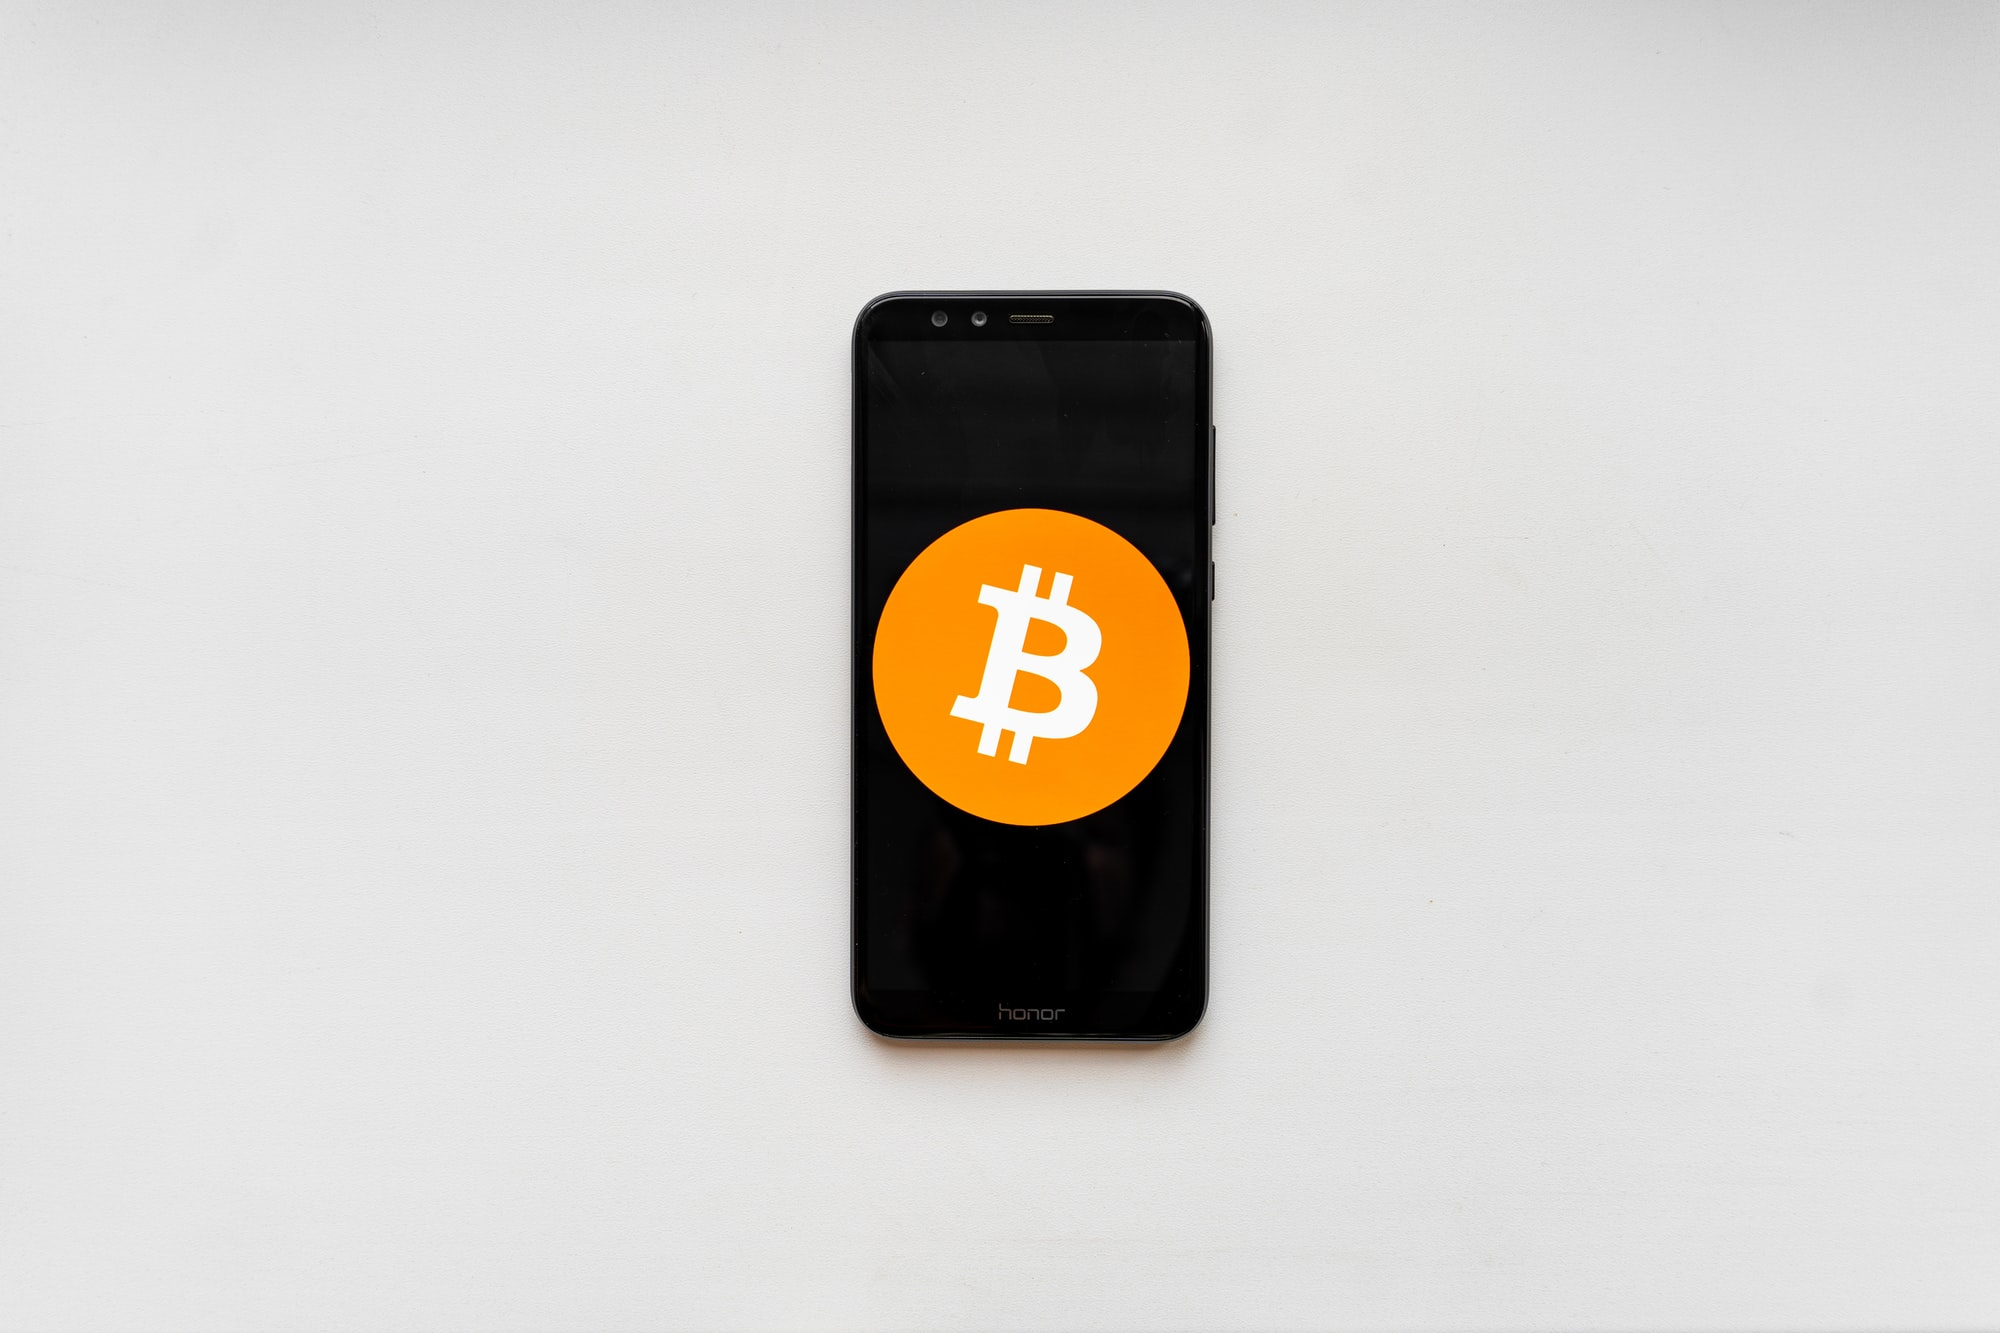 UNAJUA S7 EP3: How will blockchain tech impact the ongoing disruption of financial institutions by mobile telcos? feat. Ronit Ghose